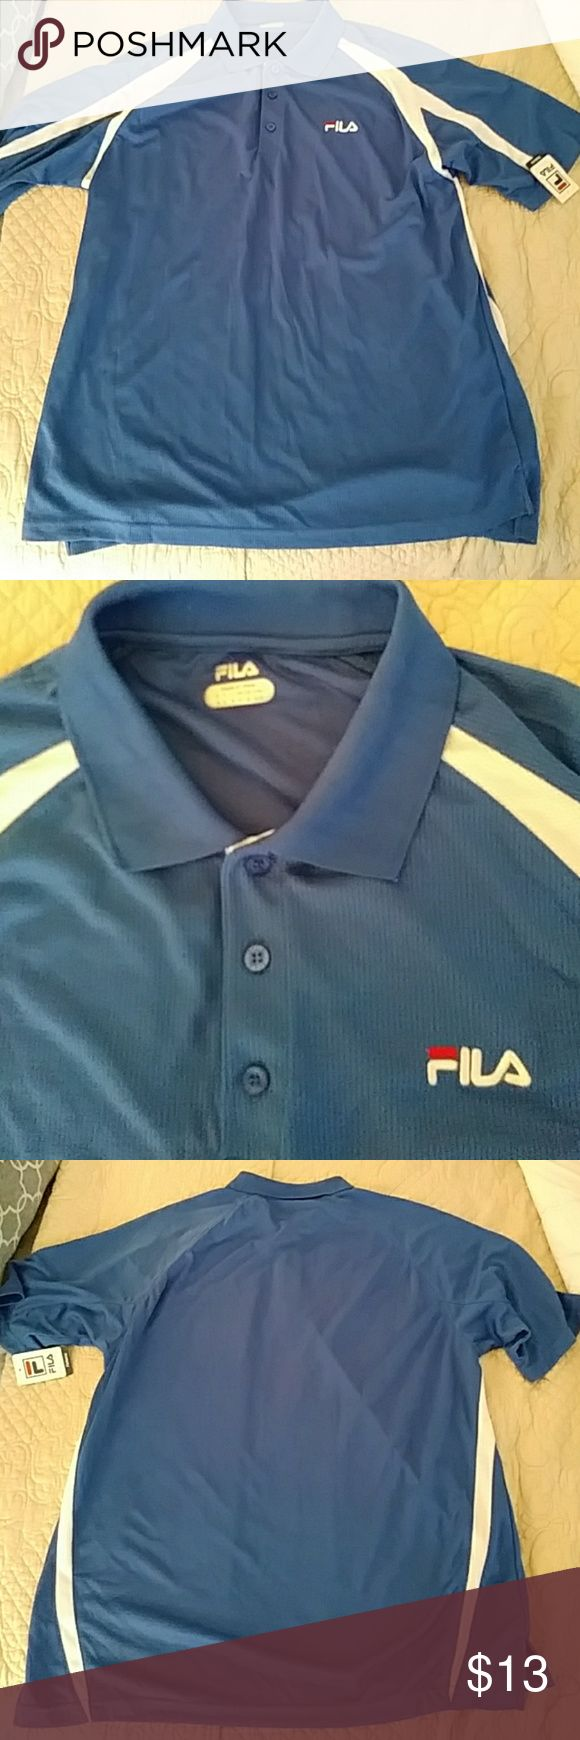 Nwt, Fila men's golf polo shirt size large. Brand new men's Fila sports golf polo size large brand new with tags and excellent new condition see pics for measurements. Materials made 100% polyester and has good stretch. Fila Shirts Polos